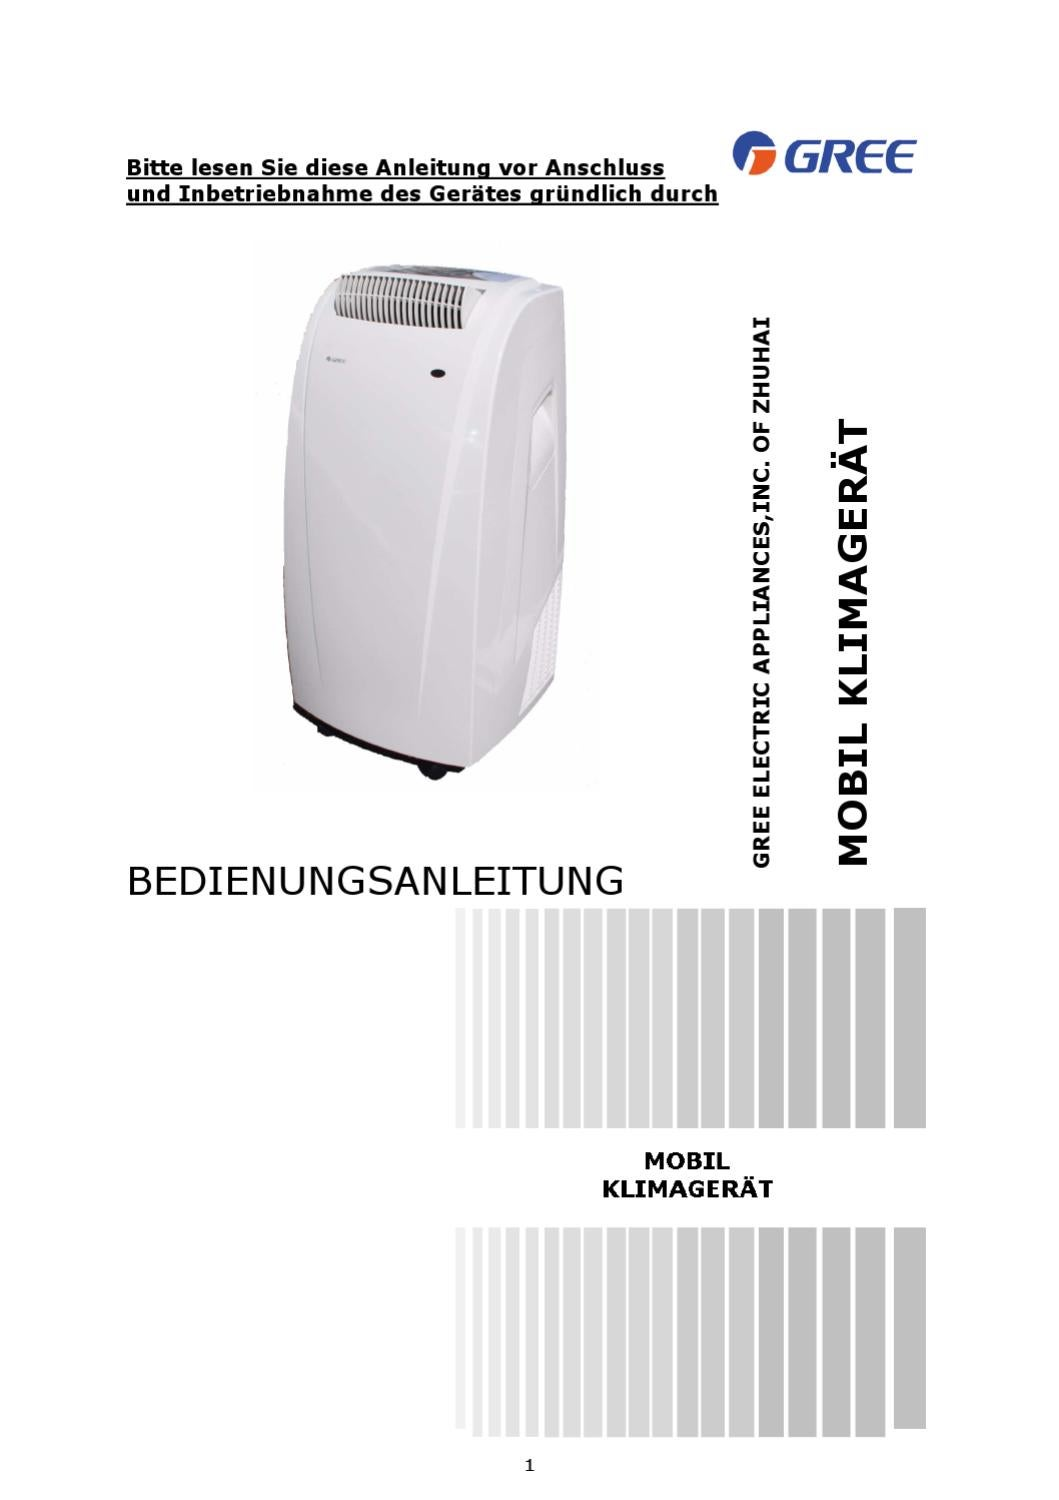 Klimaanlage Mobil Warten A35 Bedienungsanleitung Gpcn12a2nk3ca By Kusters Tho Issuu